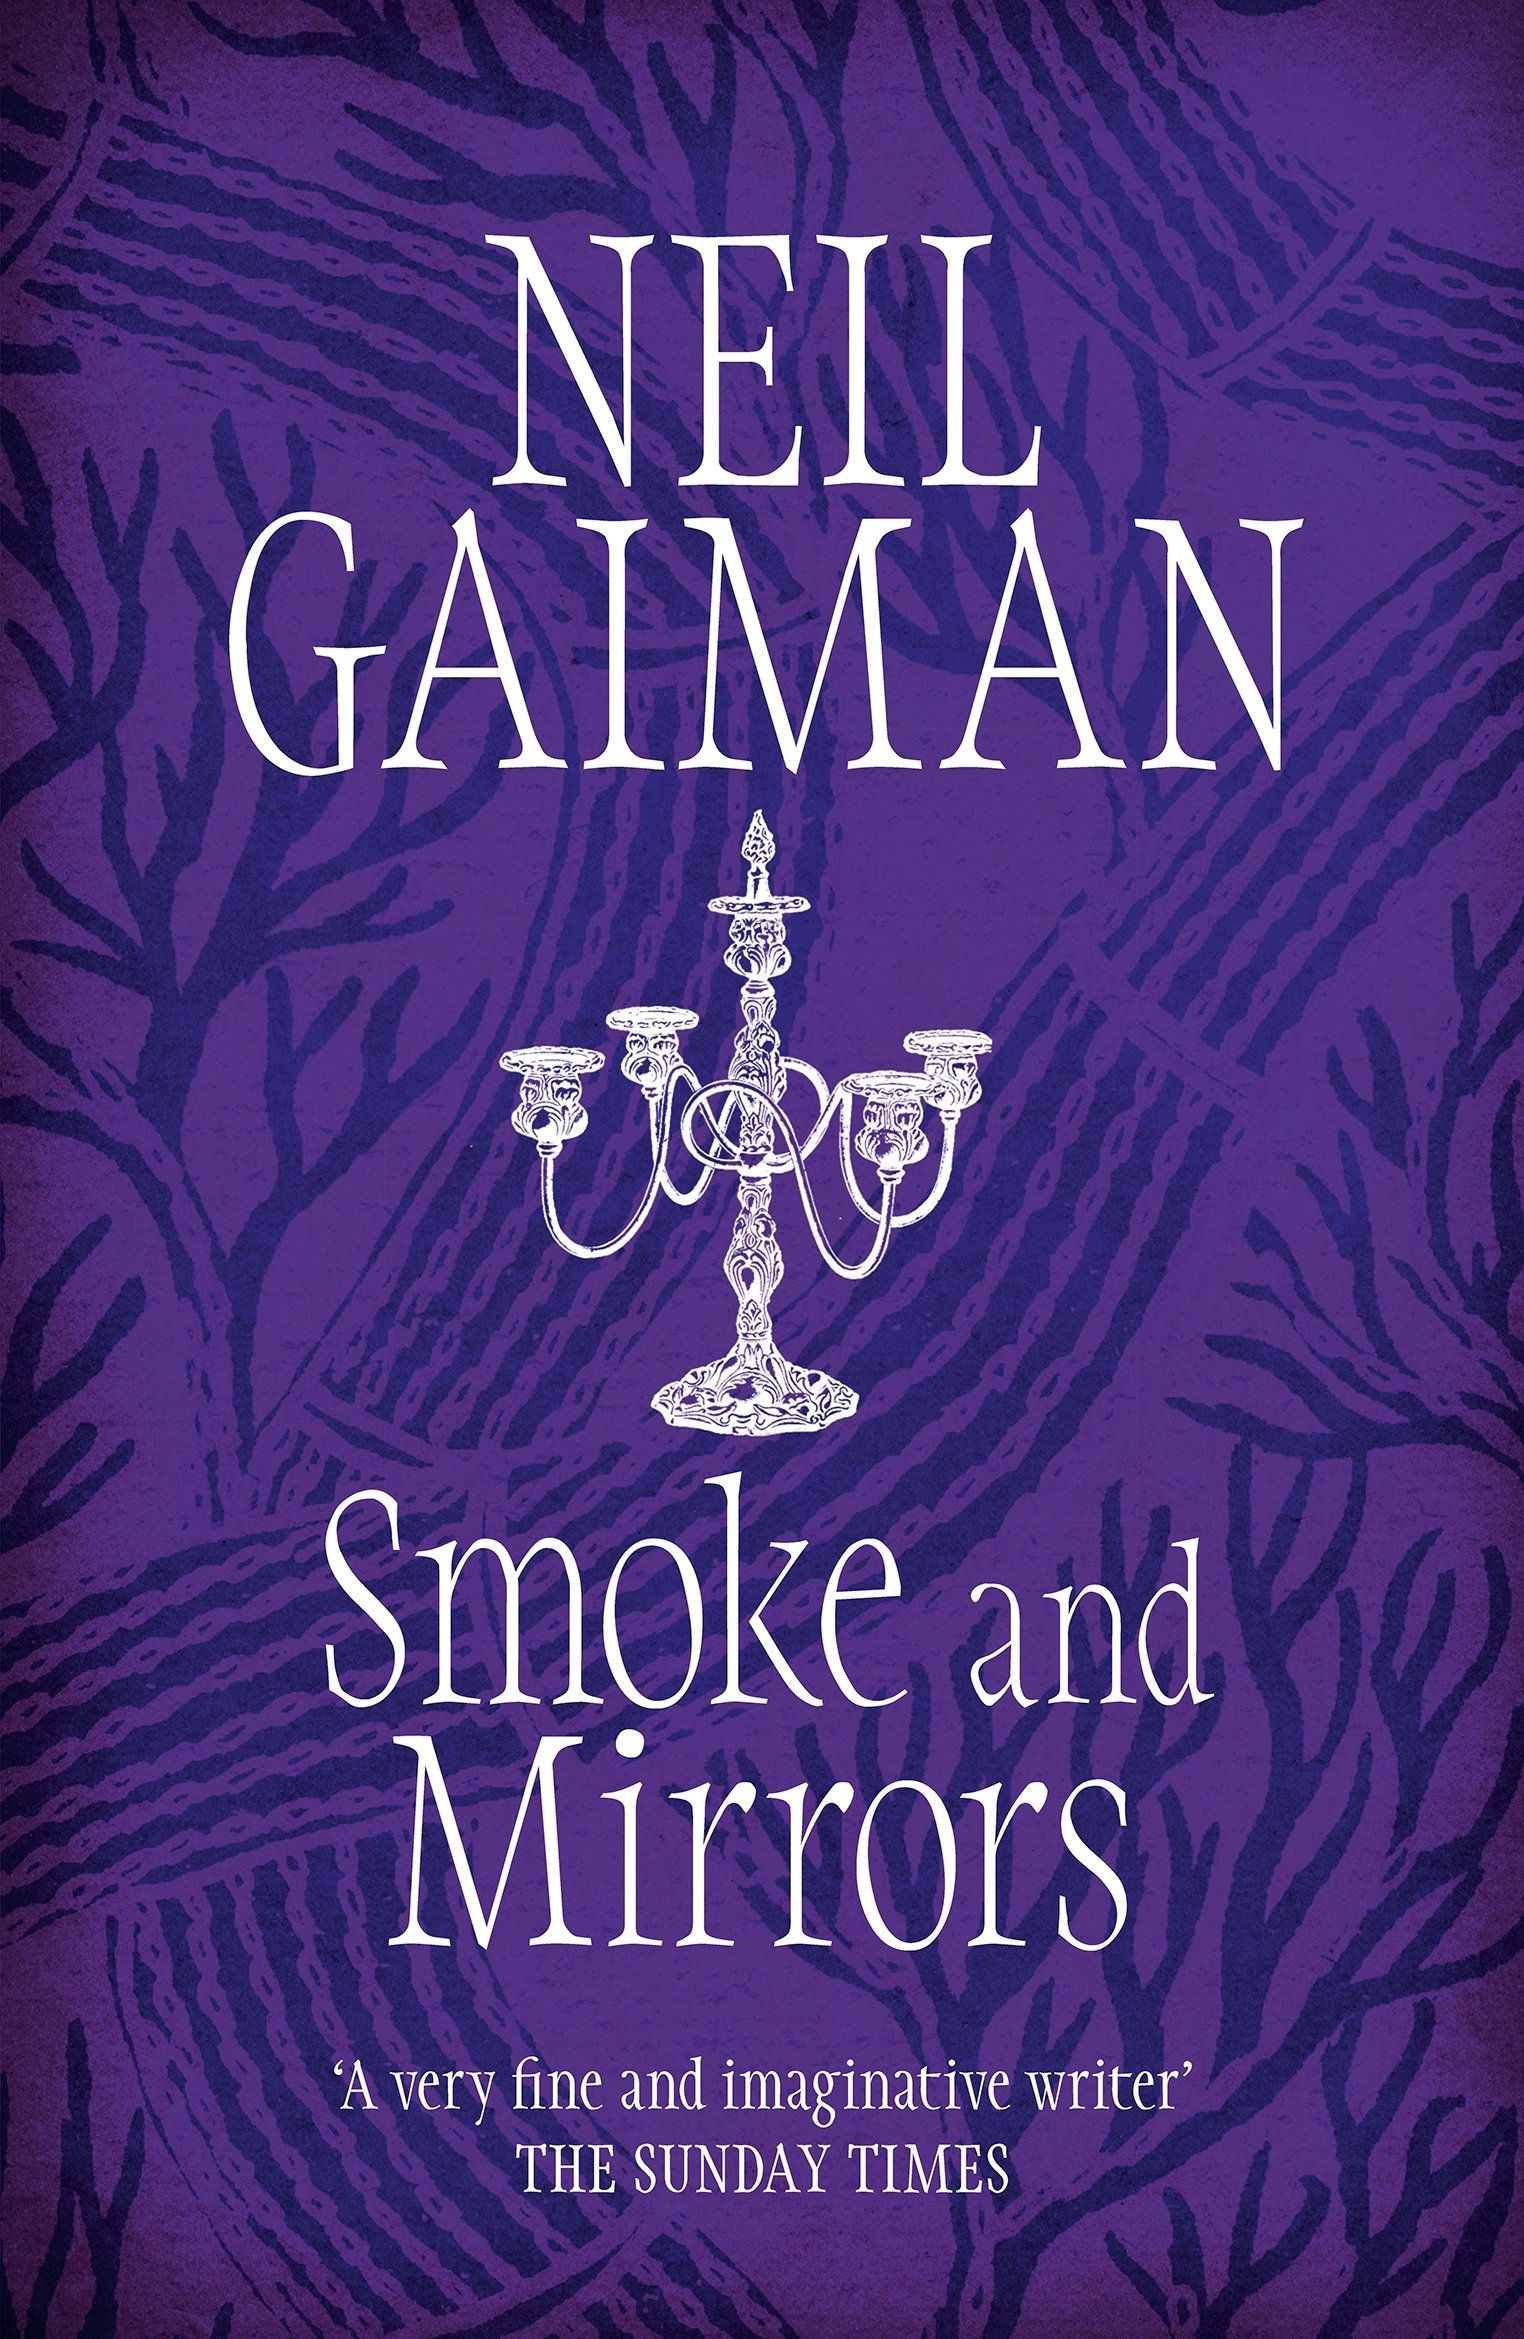 Smoke and Mirrors by Neil Gaiman This is a delightfully